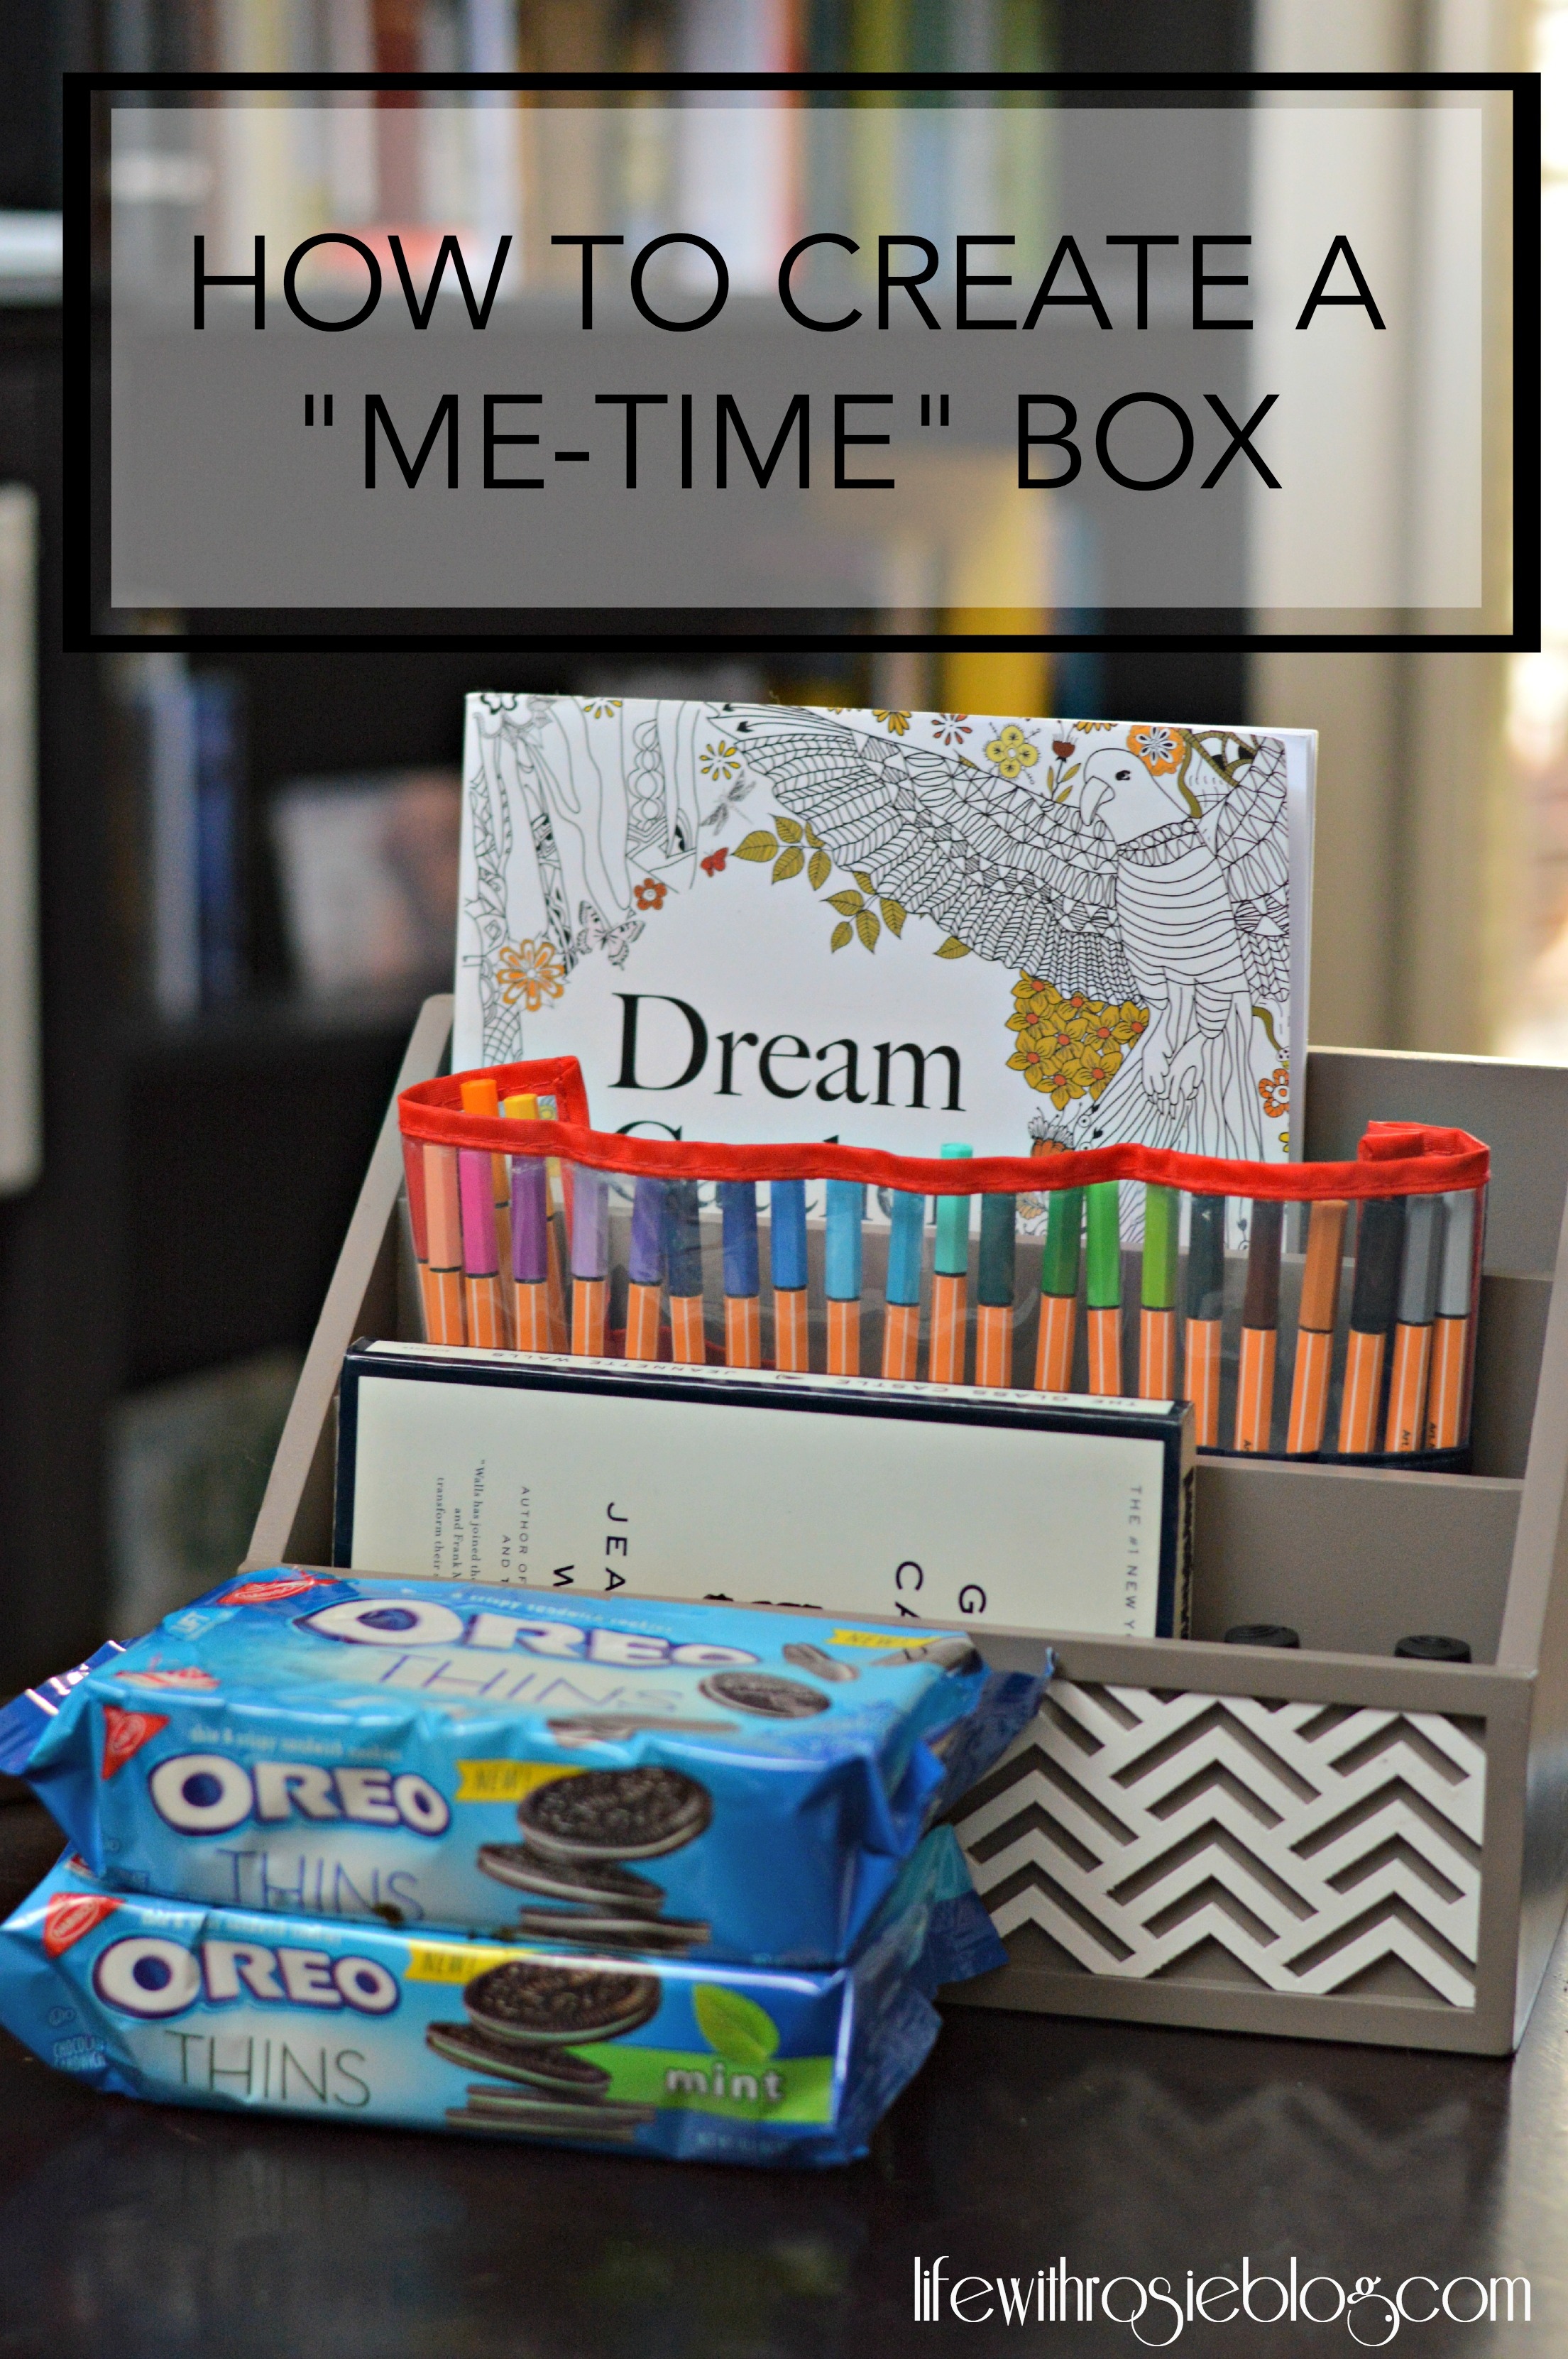 How to Create a Me-Time Box #ad #OREOthinsarein // Life with Rosie